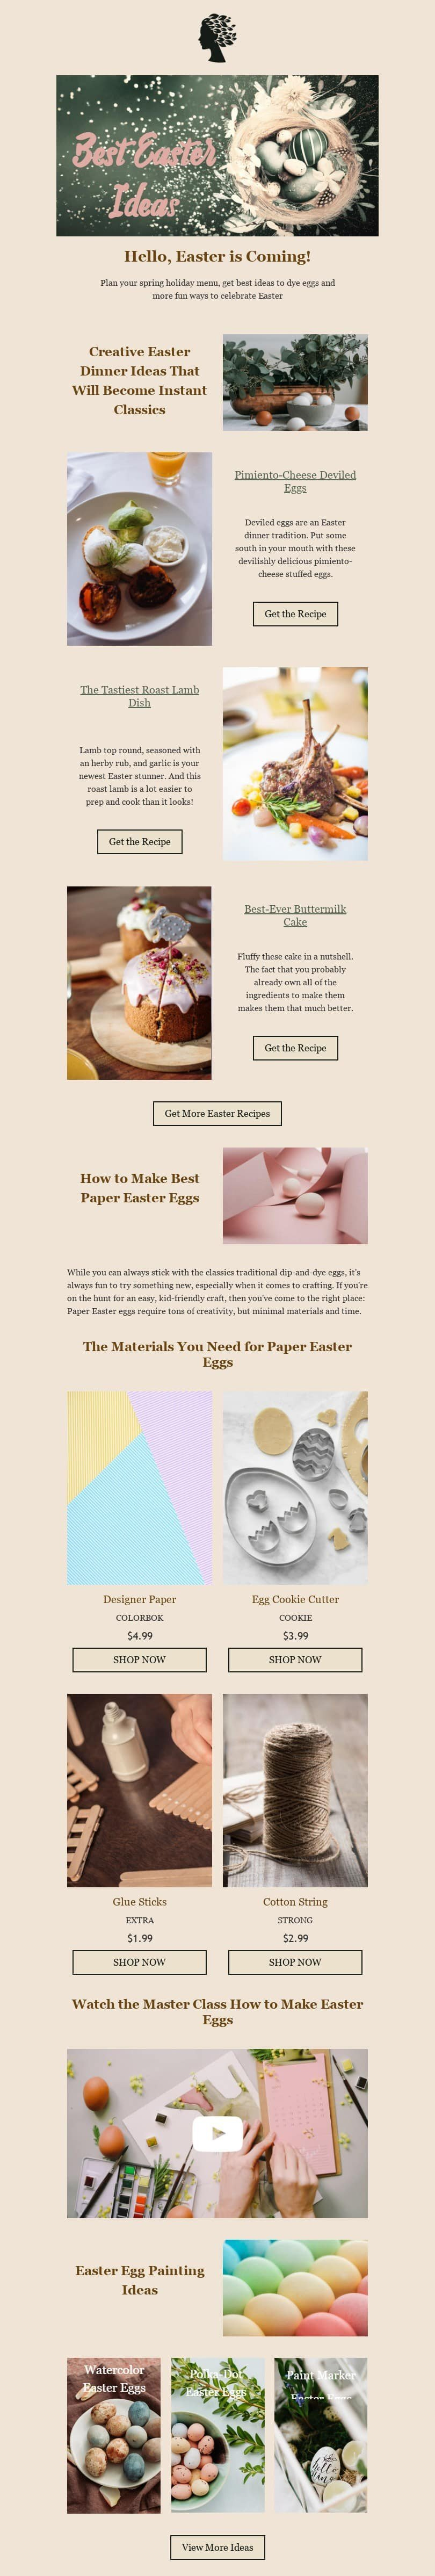 Easter Email Template «Best Easter Ideas» for Food industry desktop view